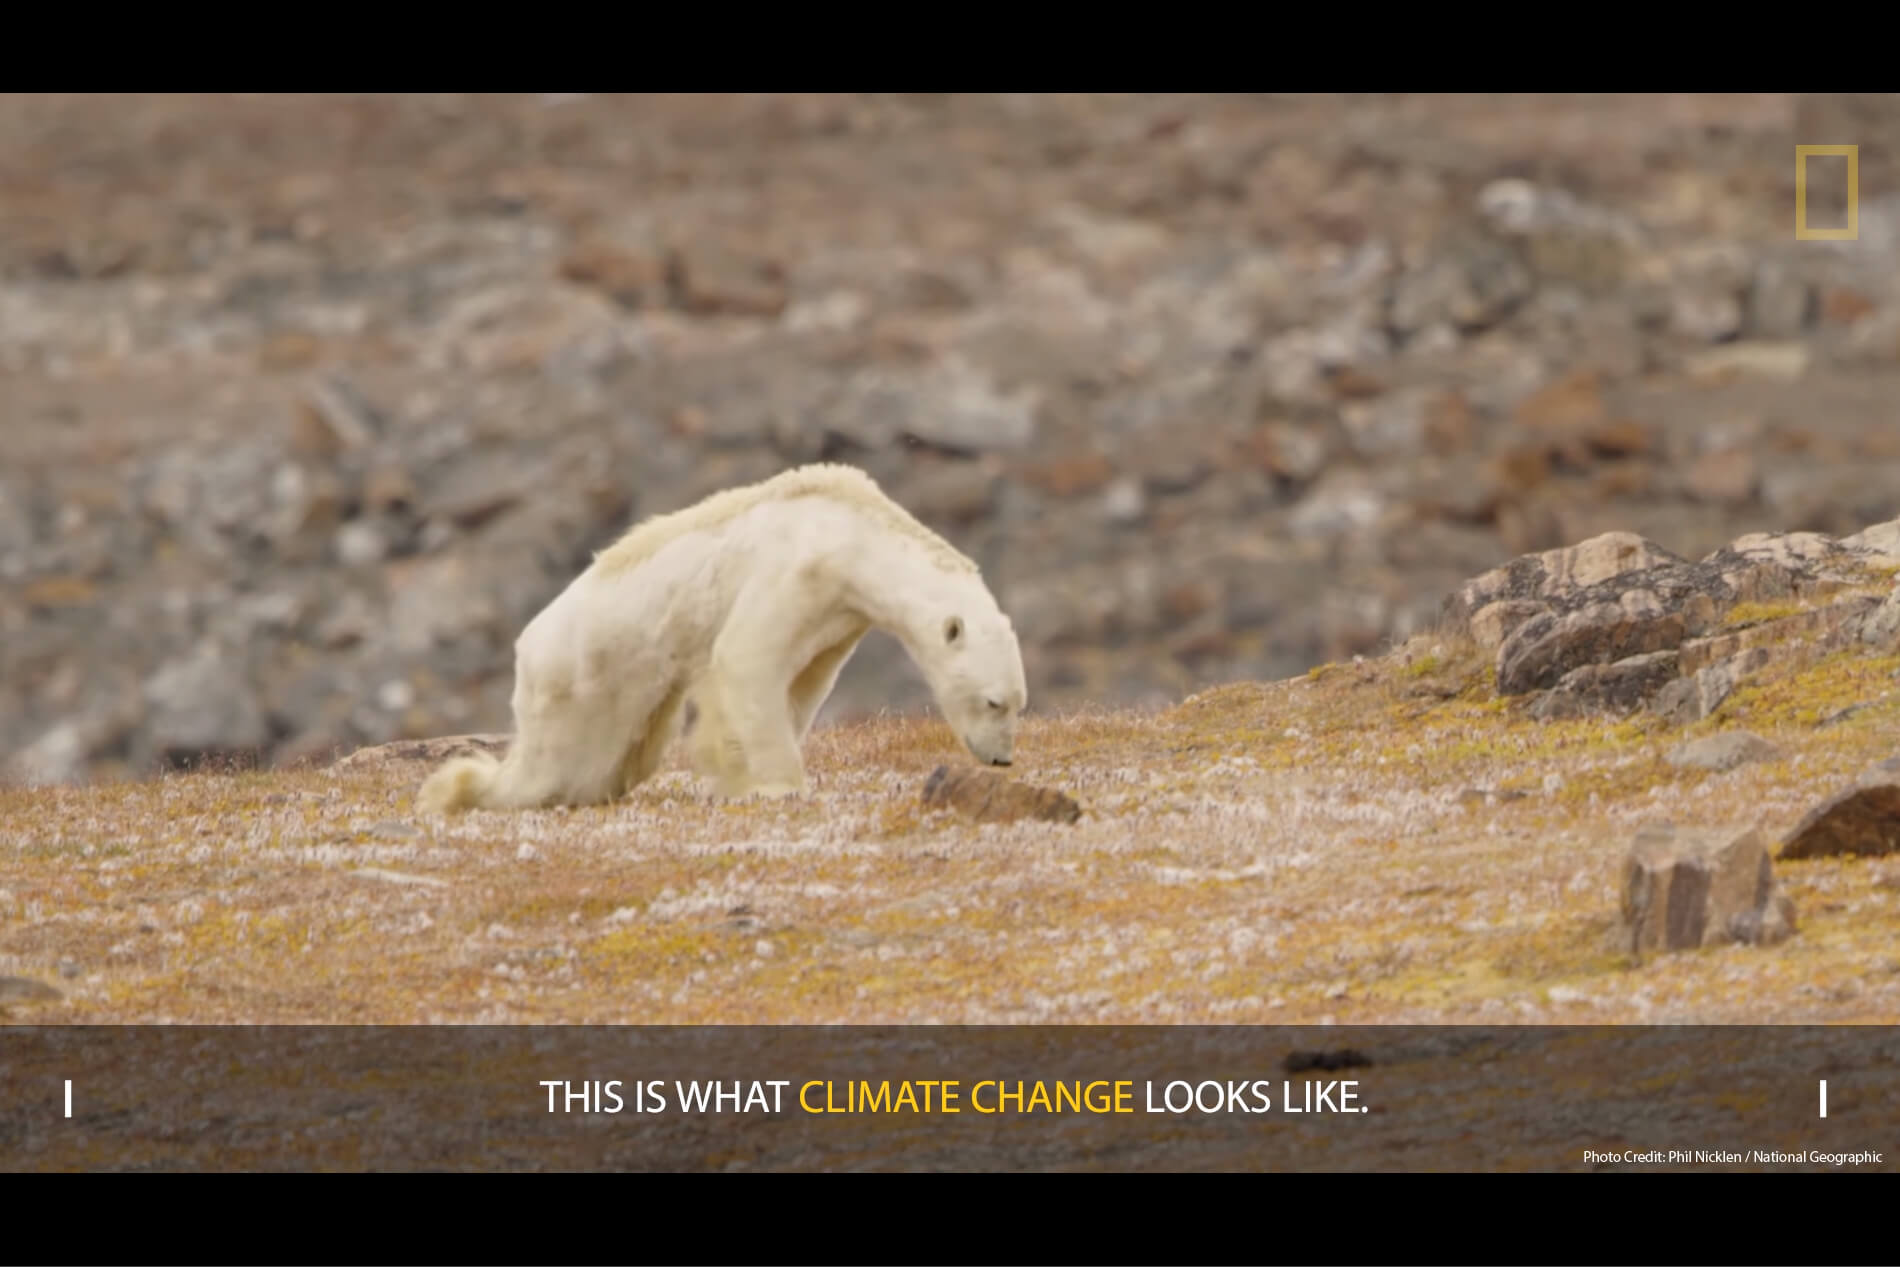 Starving polar bear due to climate change